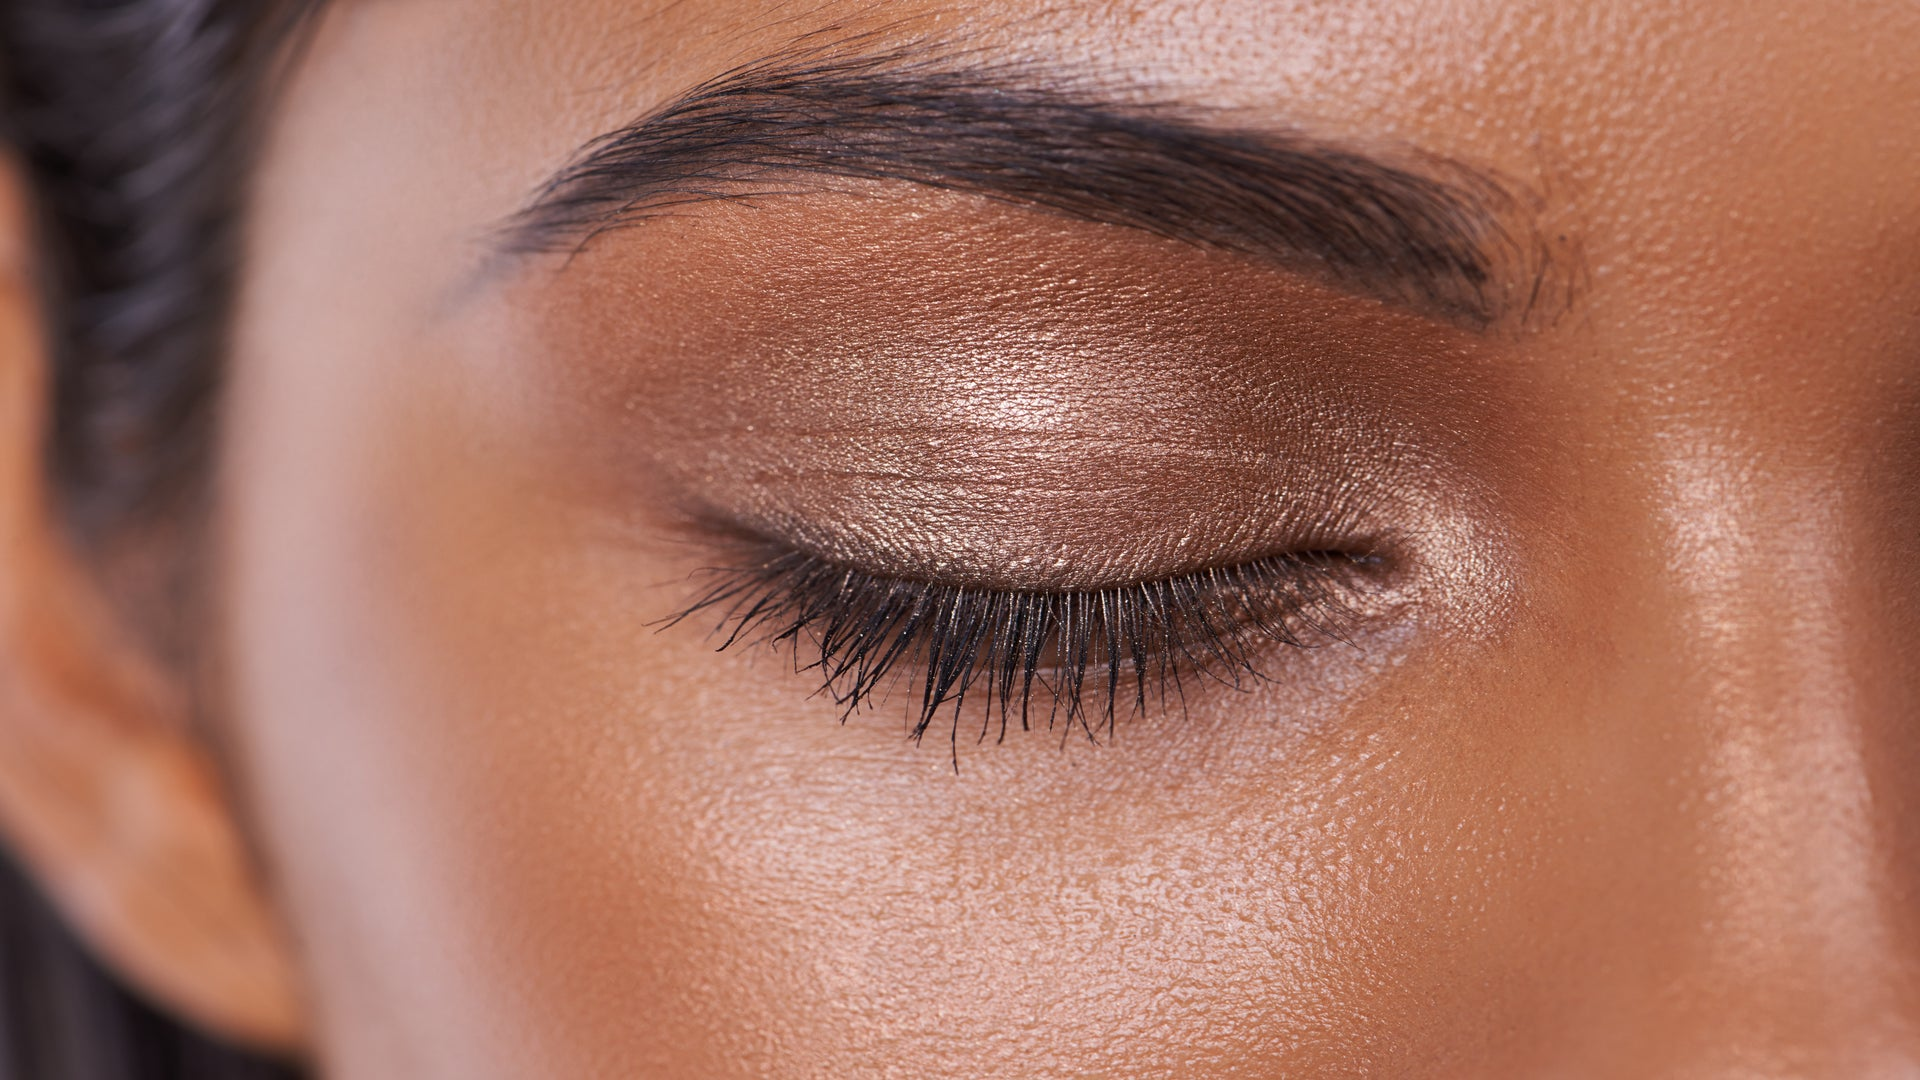 Want to Look Younger? Your Eyebrows May Be the Key, Study Says